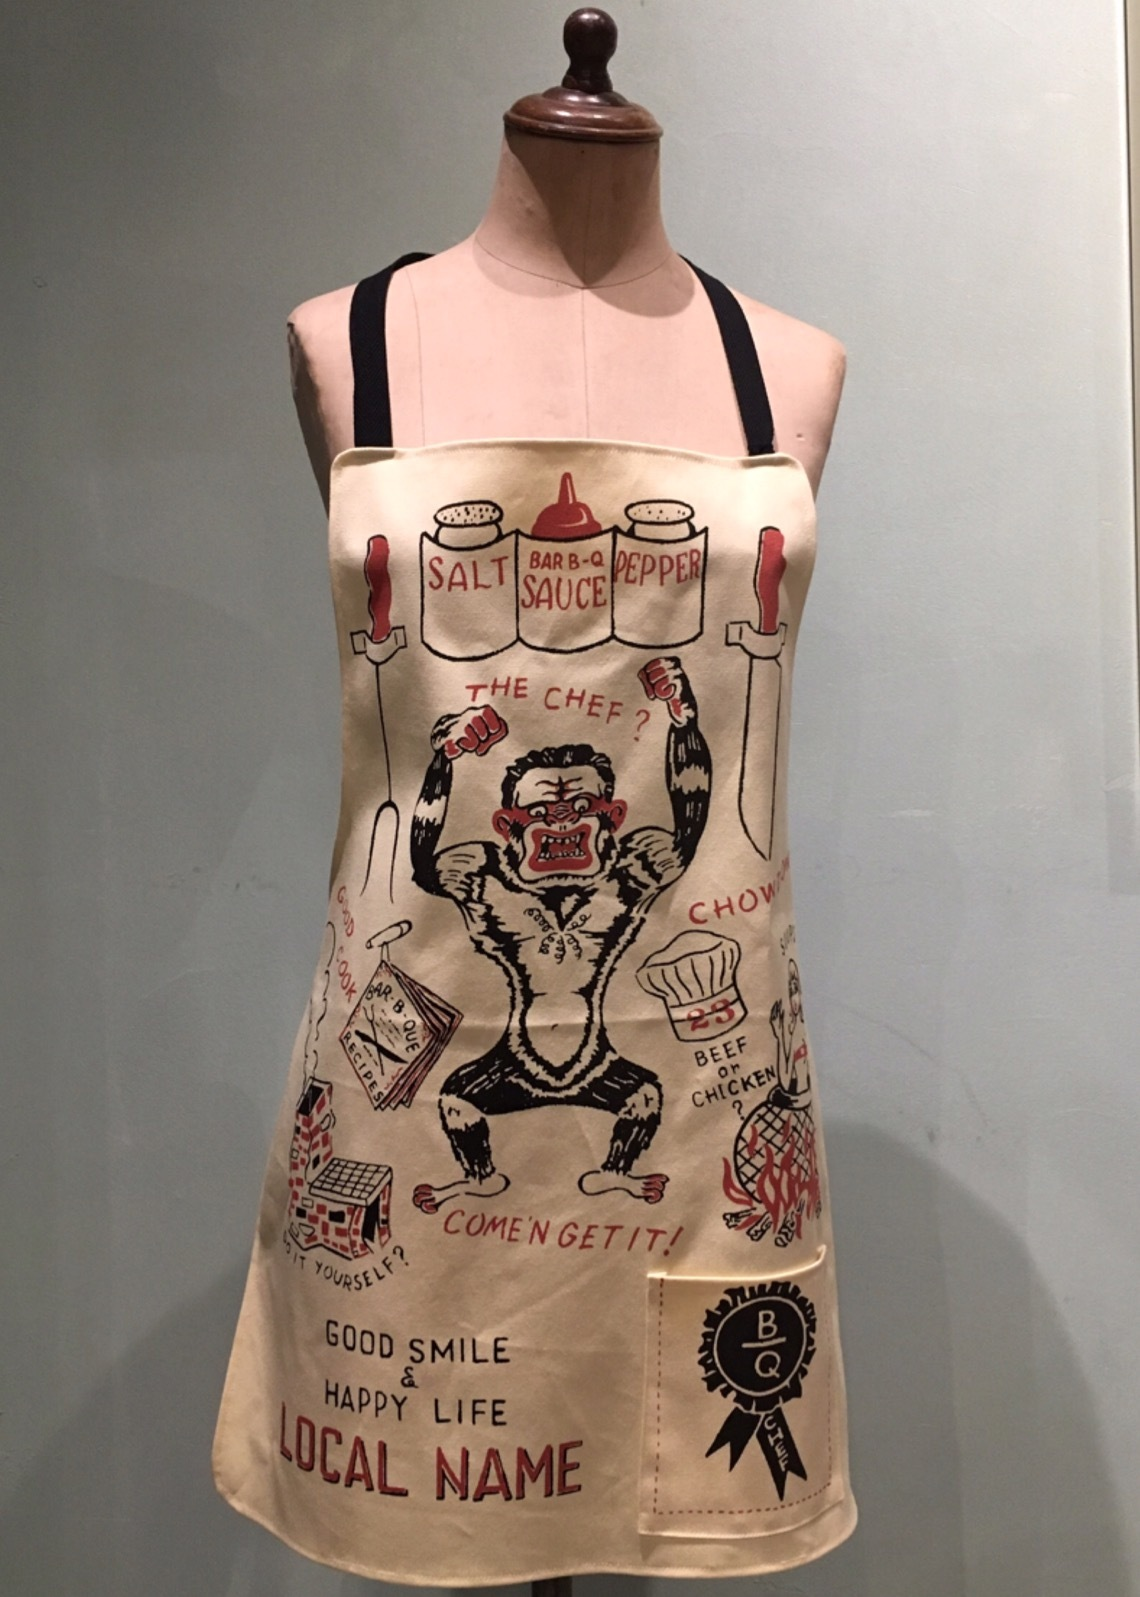 "LOCAL NAME ""THE CHEF?"" APRON (YELLOW)"